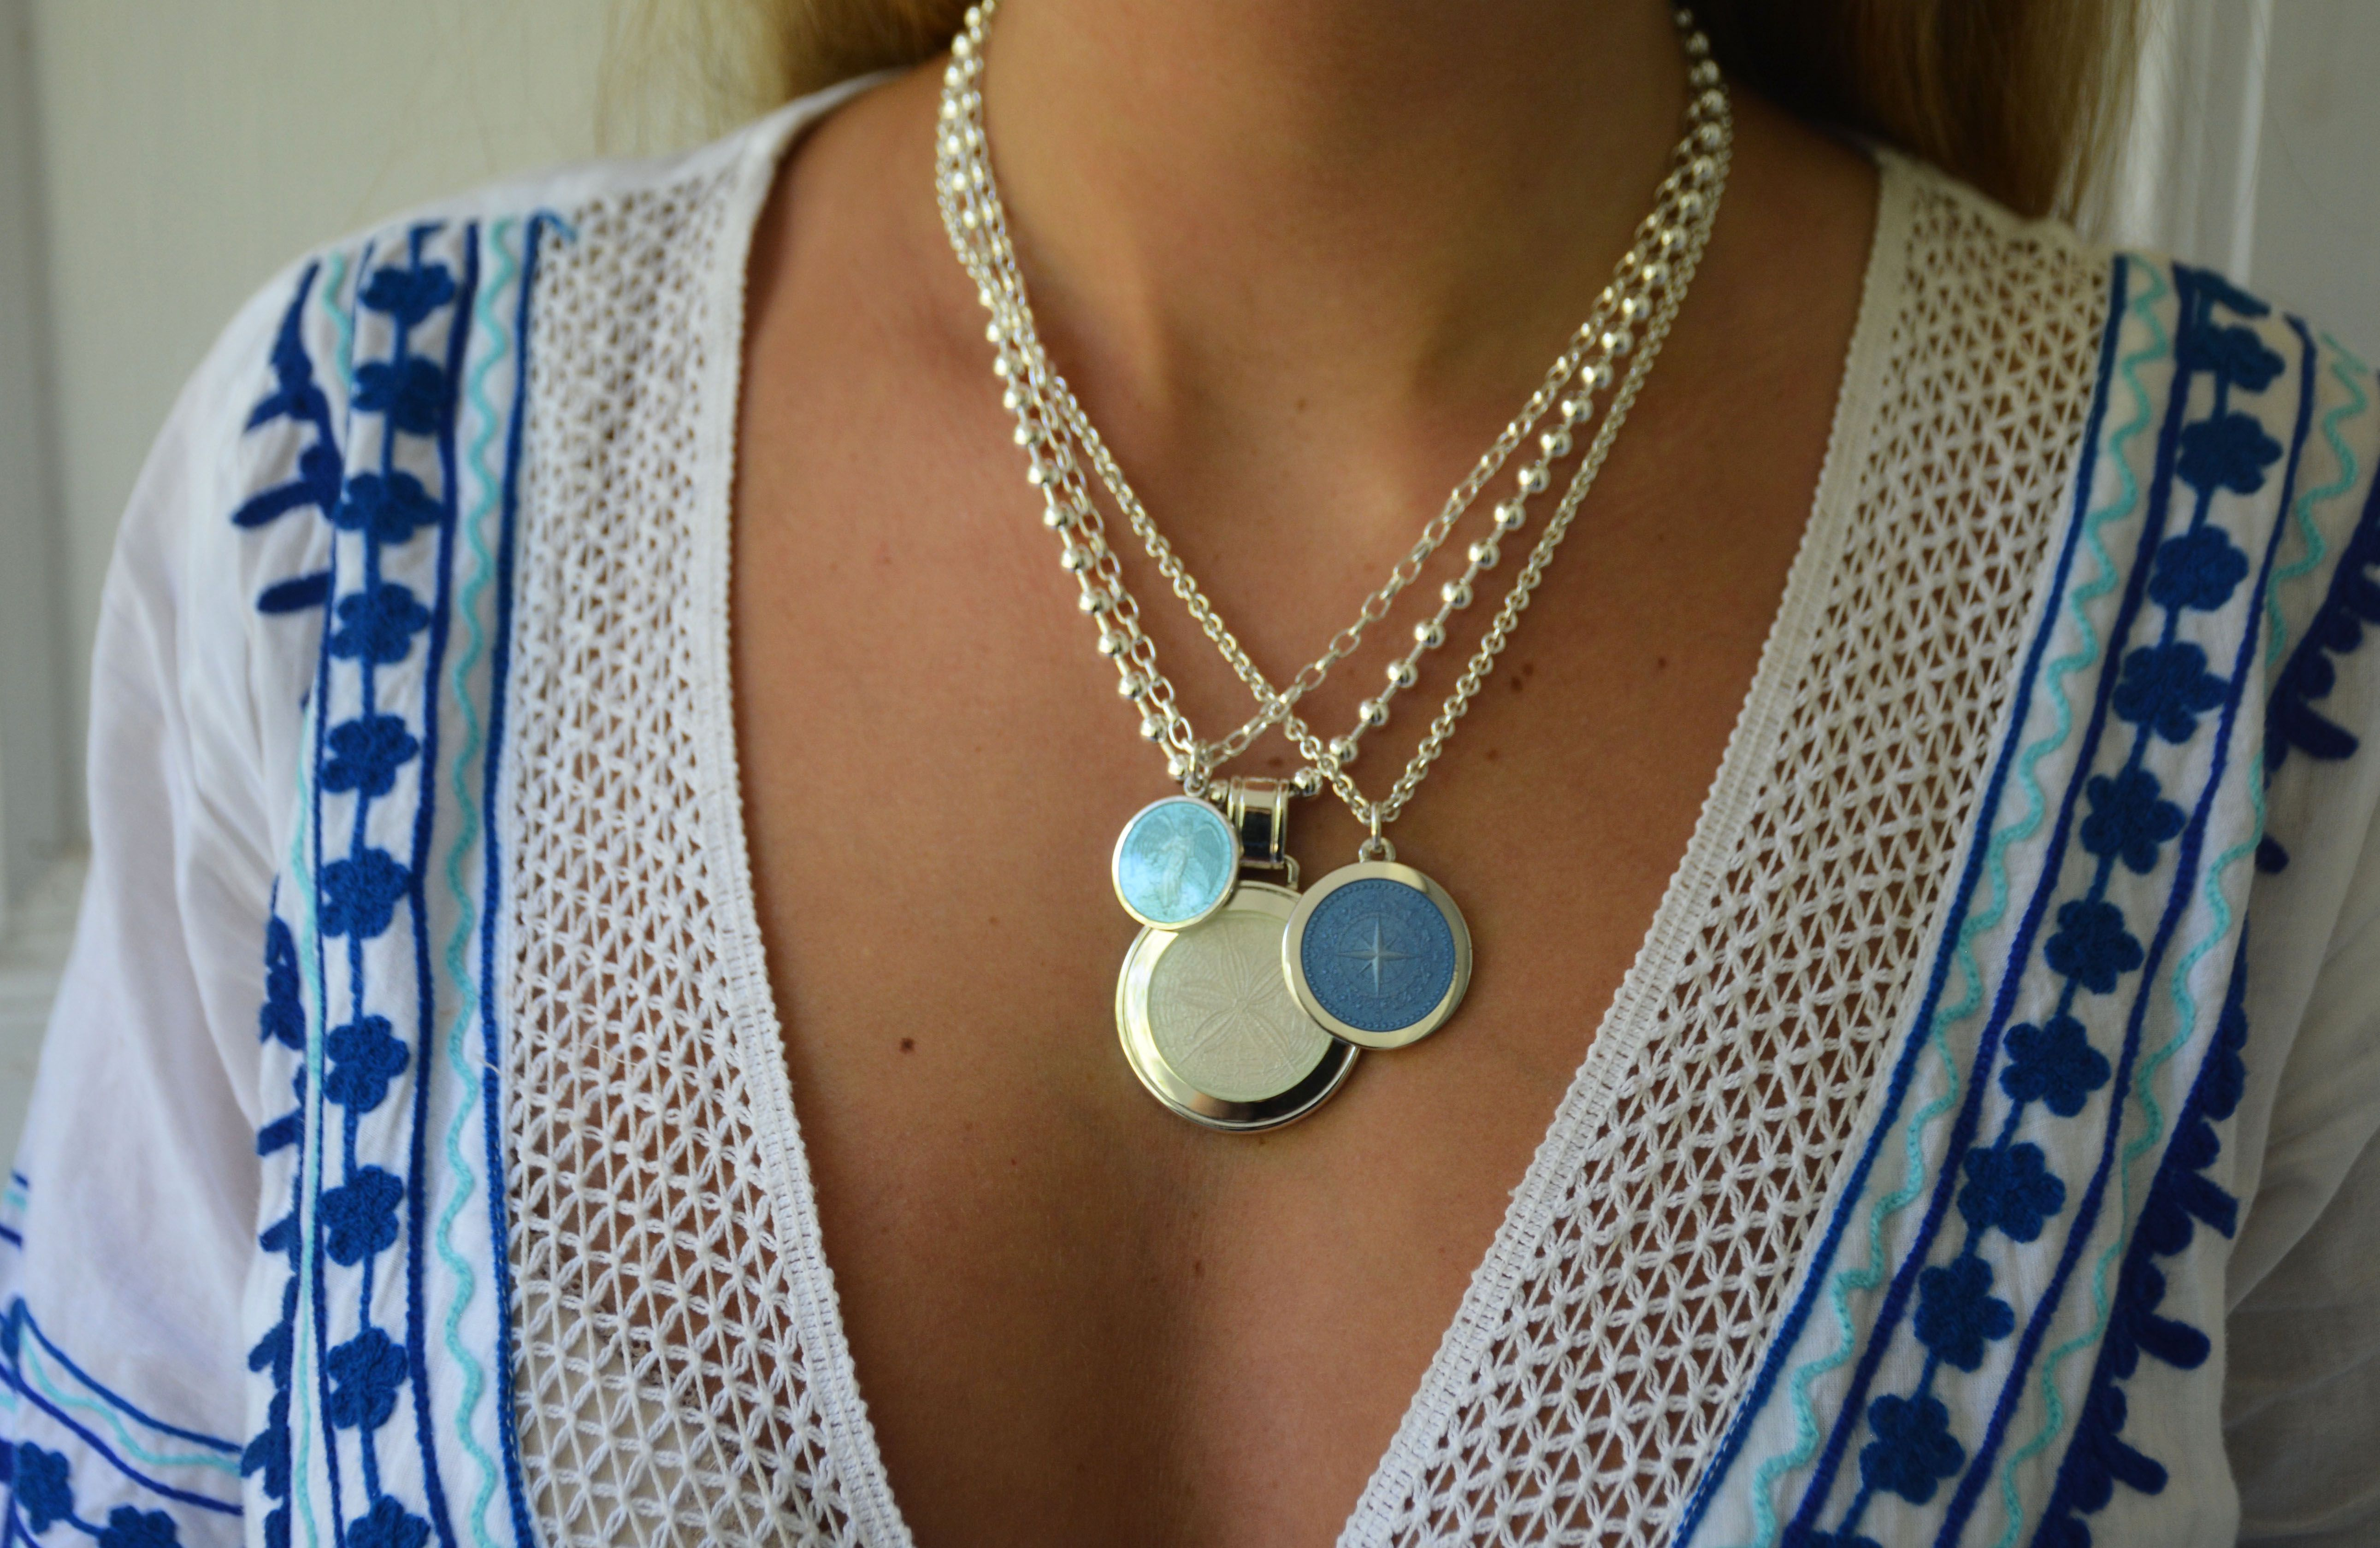 Pin By Colby Davis Of Boston On Our Colby Davis Jewelry Timeless Jewelry Jewelry Jewelry Collection